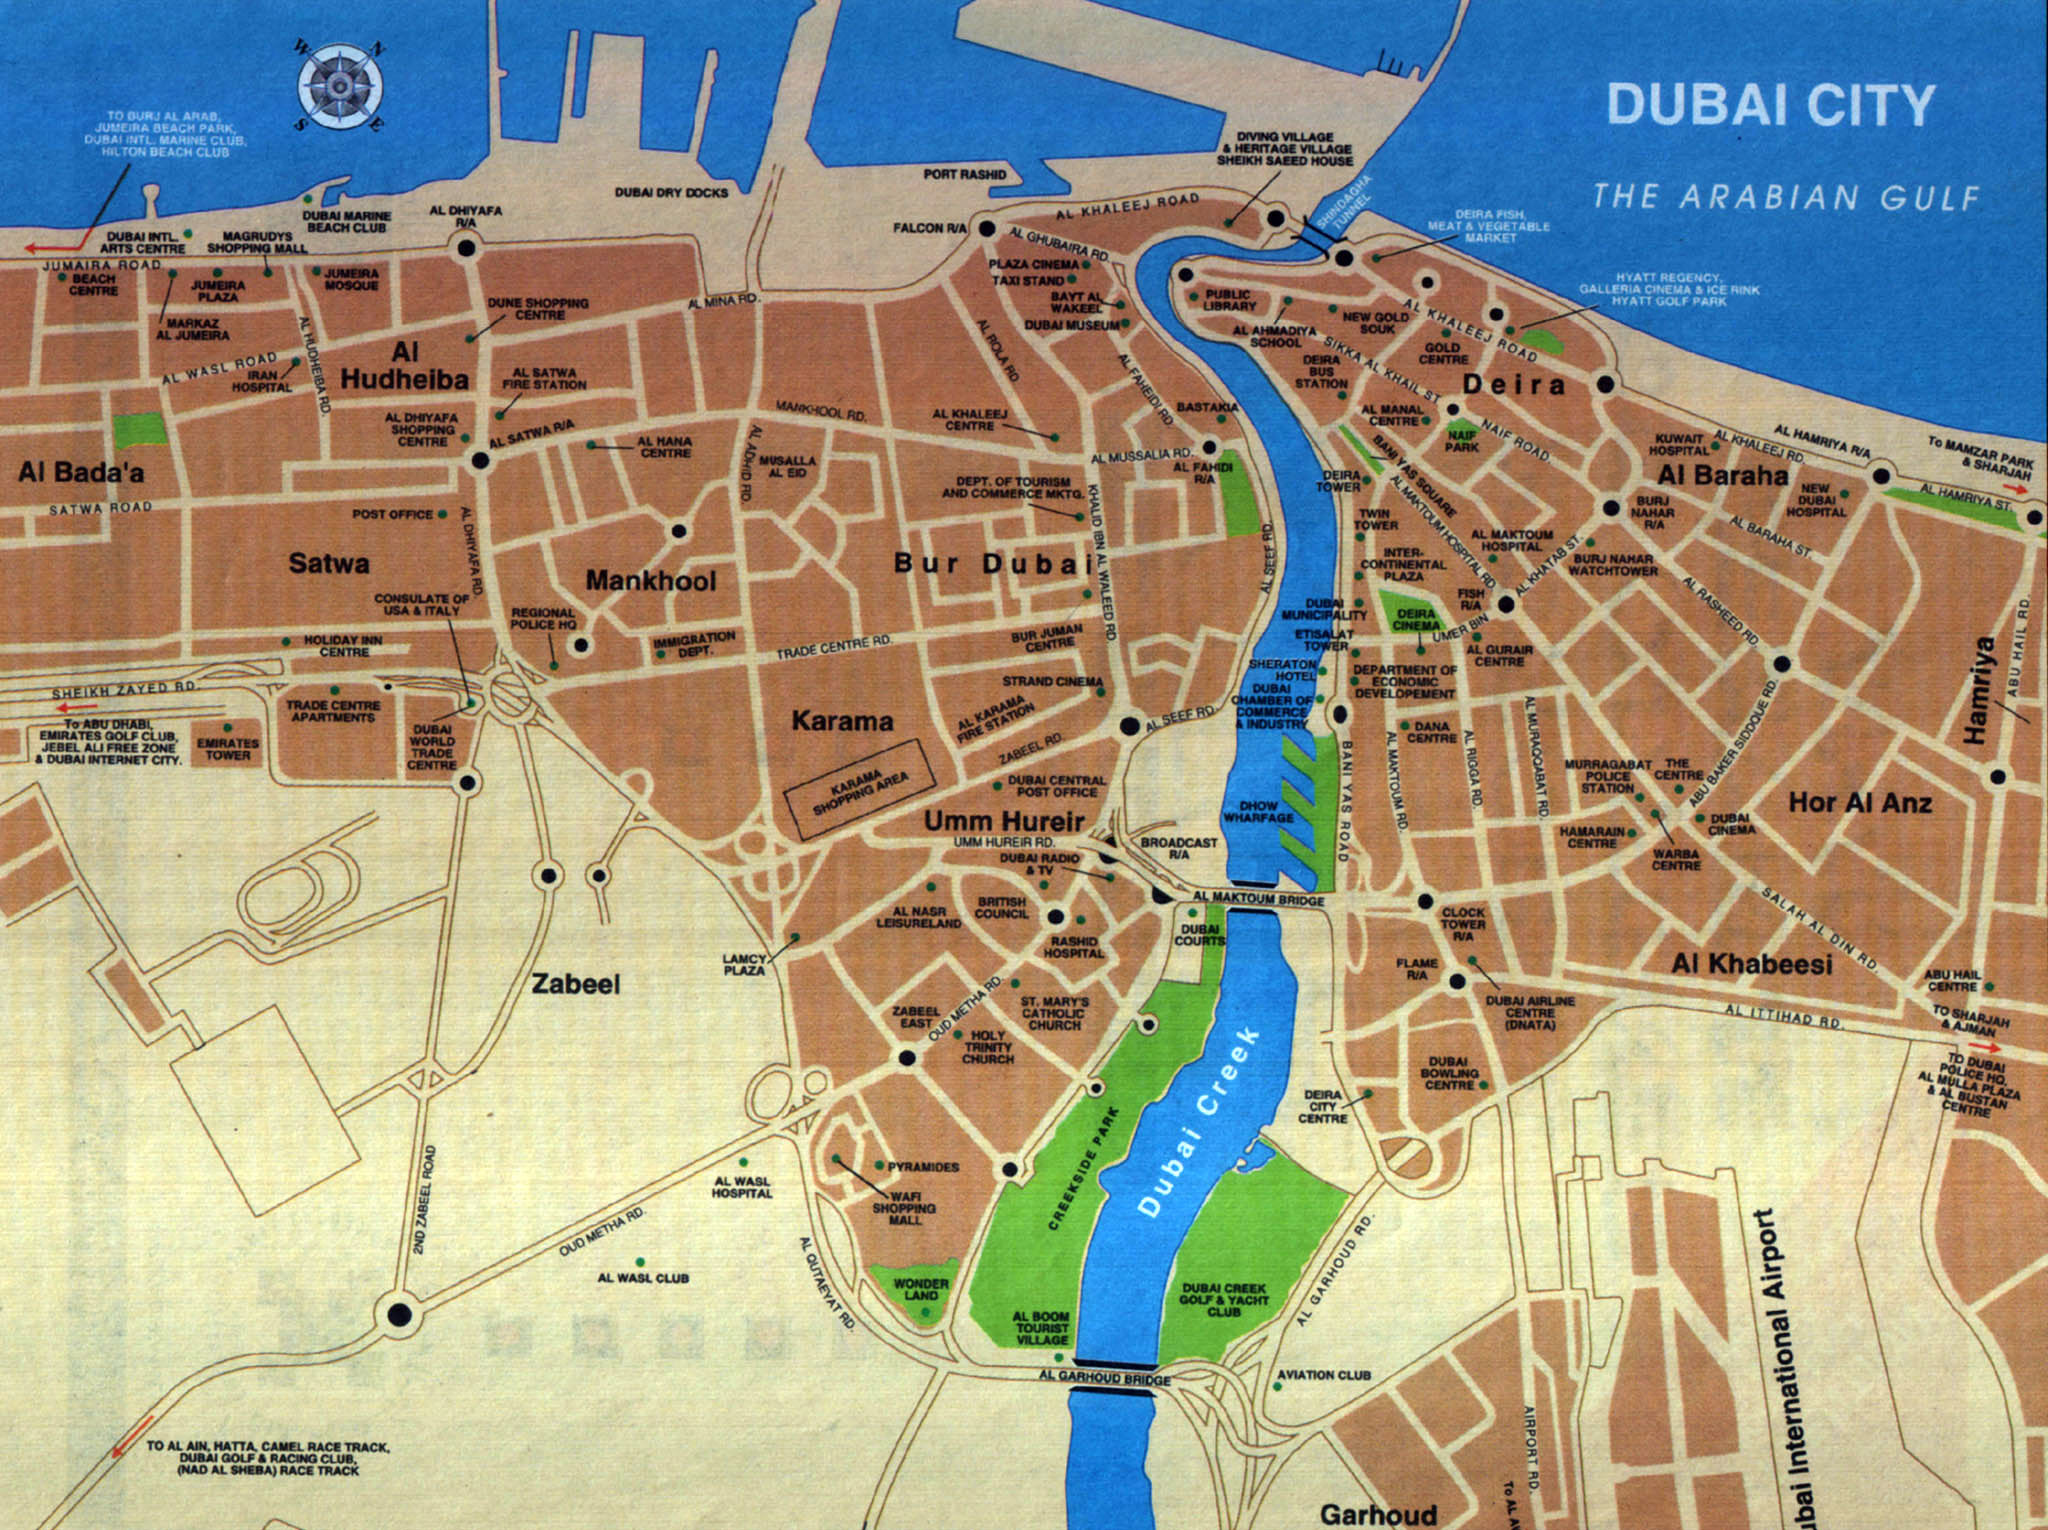 Complete Dubai City Map plus Travel Information Guide for Travelers,tourist map dubai,dubai city map pdf,dubai city map free download,dubai city map location,dubai city map google,dubai city map 2011 2012 2013,dubai city map download,dubai world map,Dubai city hotels tourism map